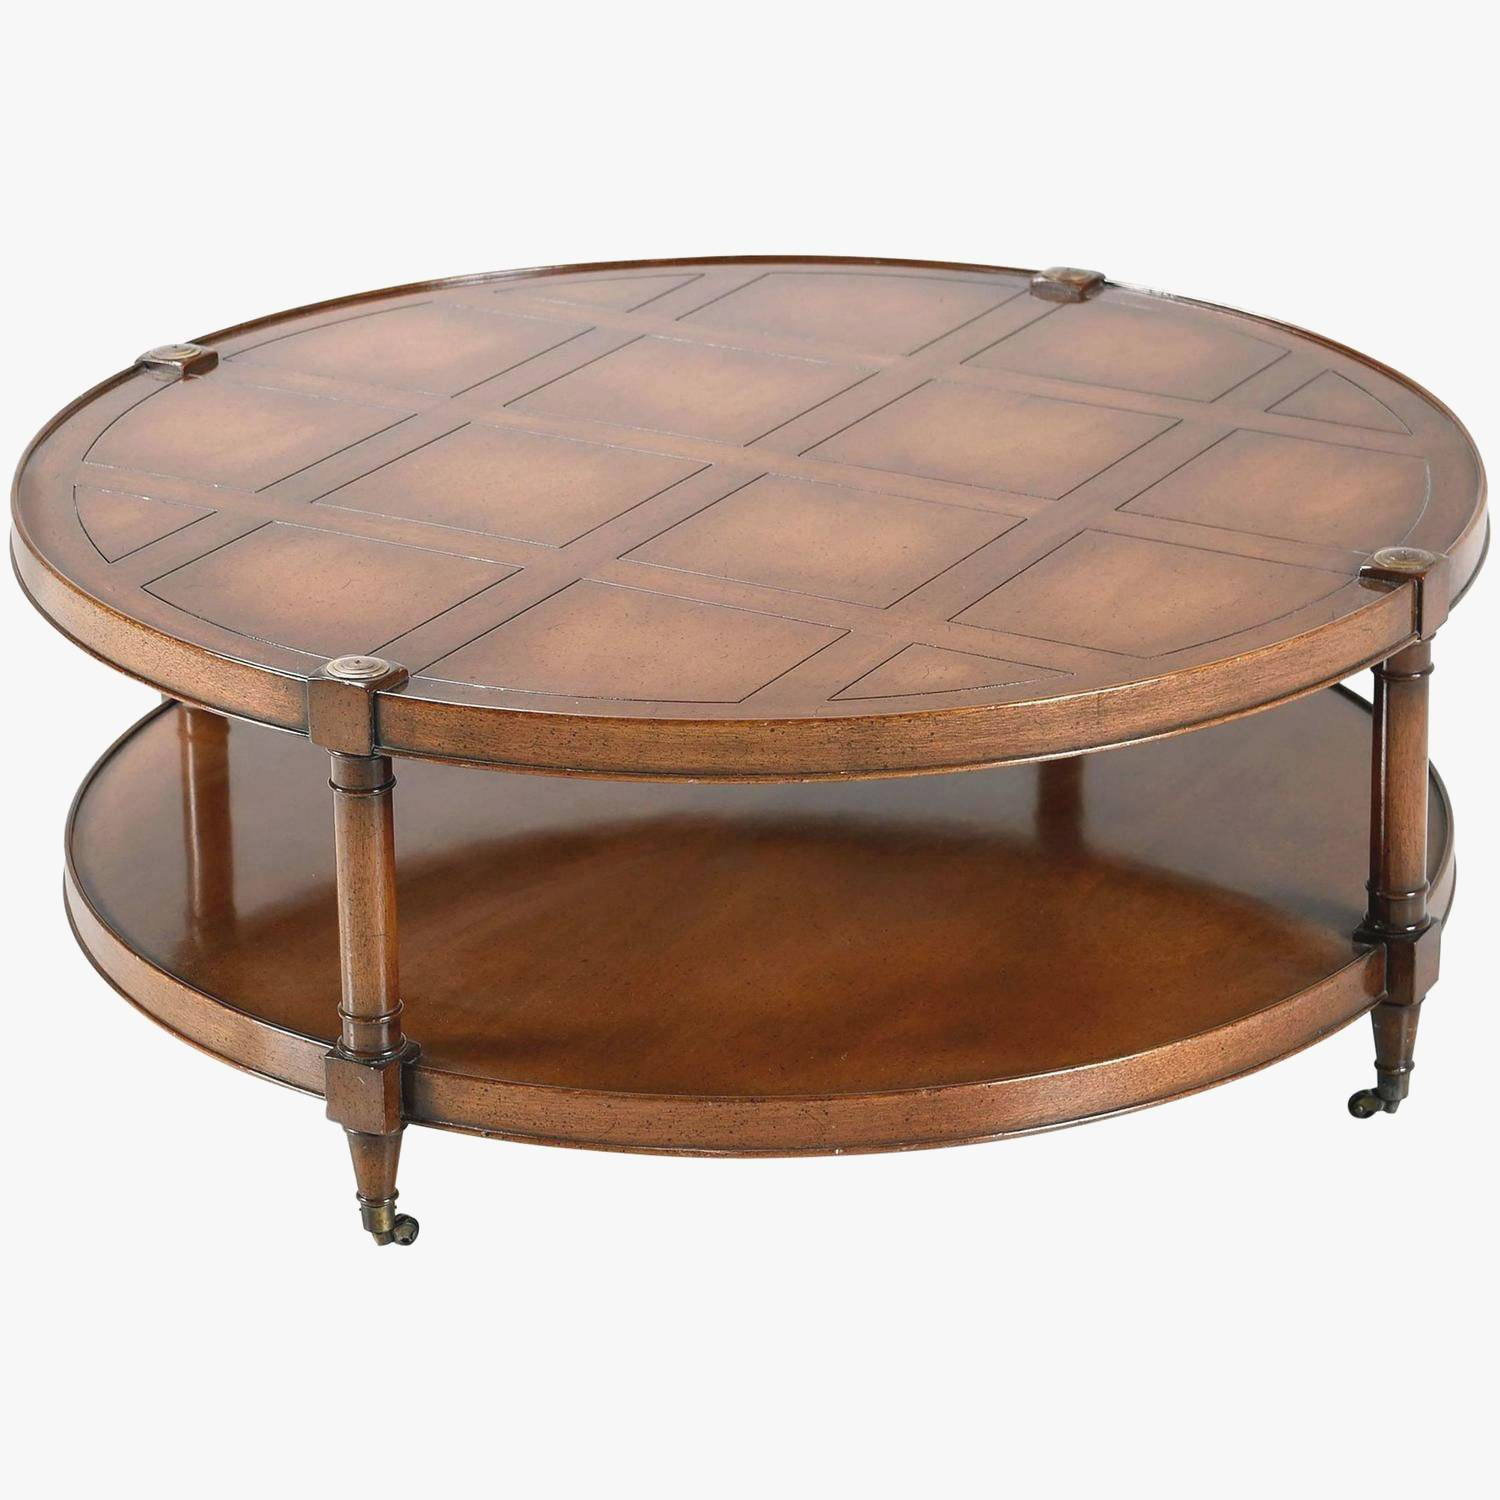 coffee table wheels for sale best heritage mahogany round coffee table on casters in 2019 of coffee table wheels for sale